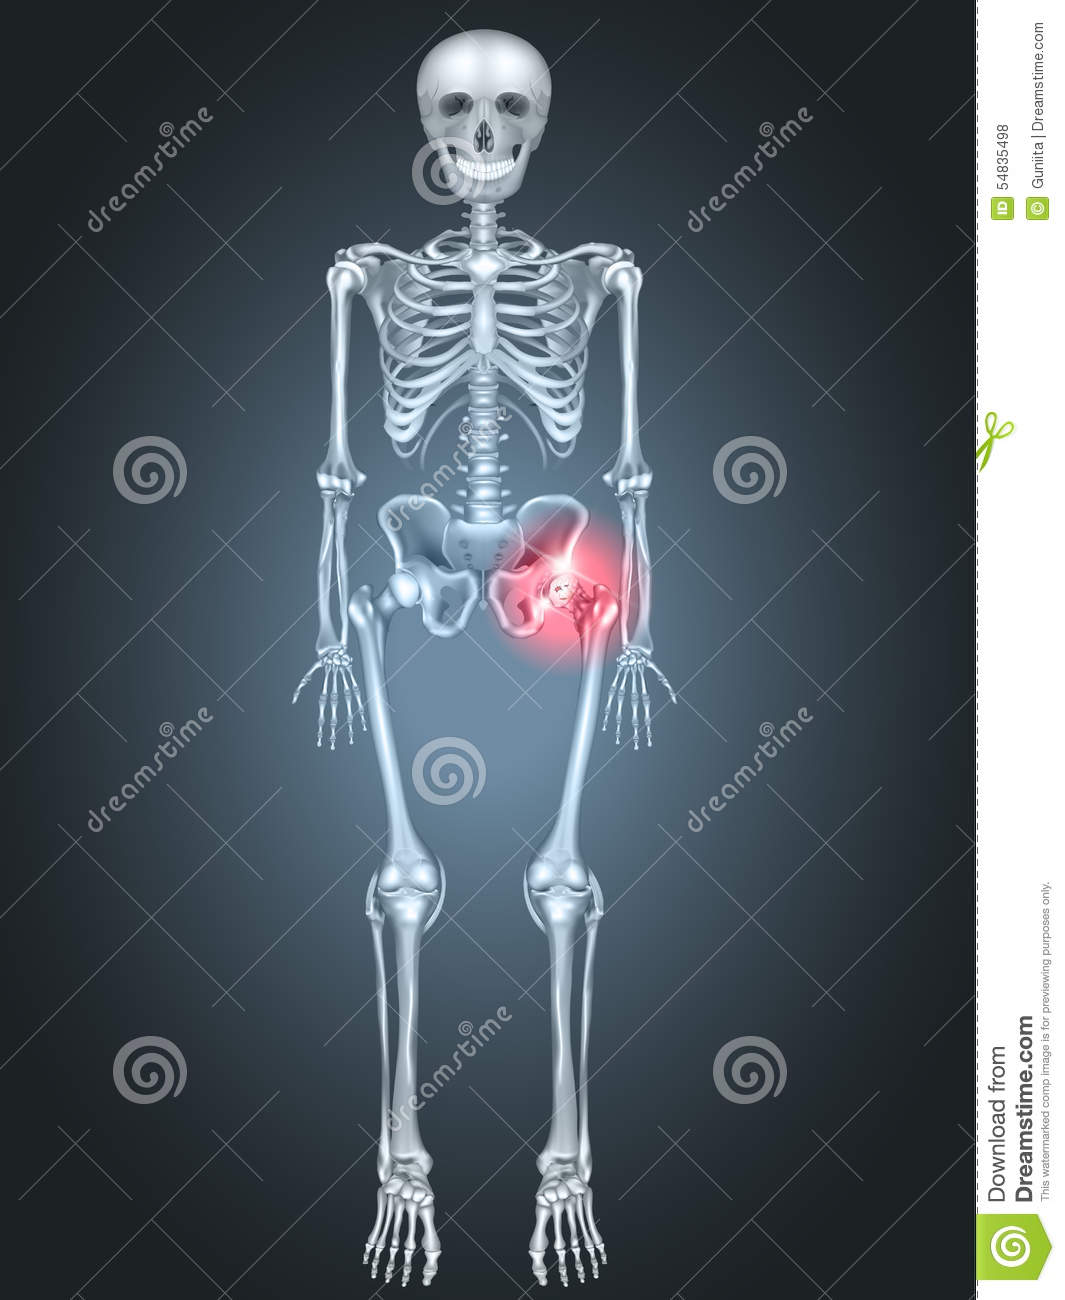 Skeleton with Hip pain stock vector. Illustration of hurt - 54835498